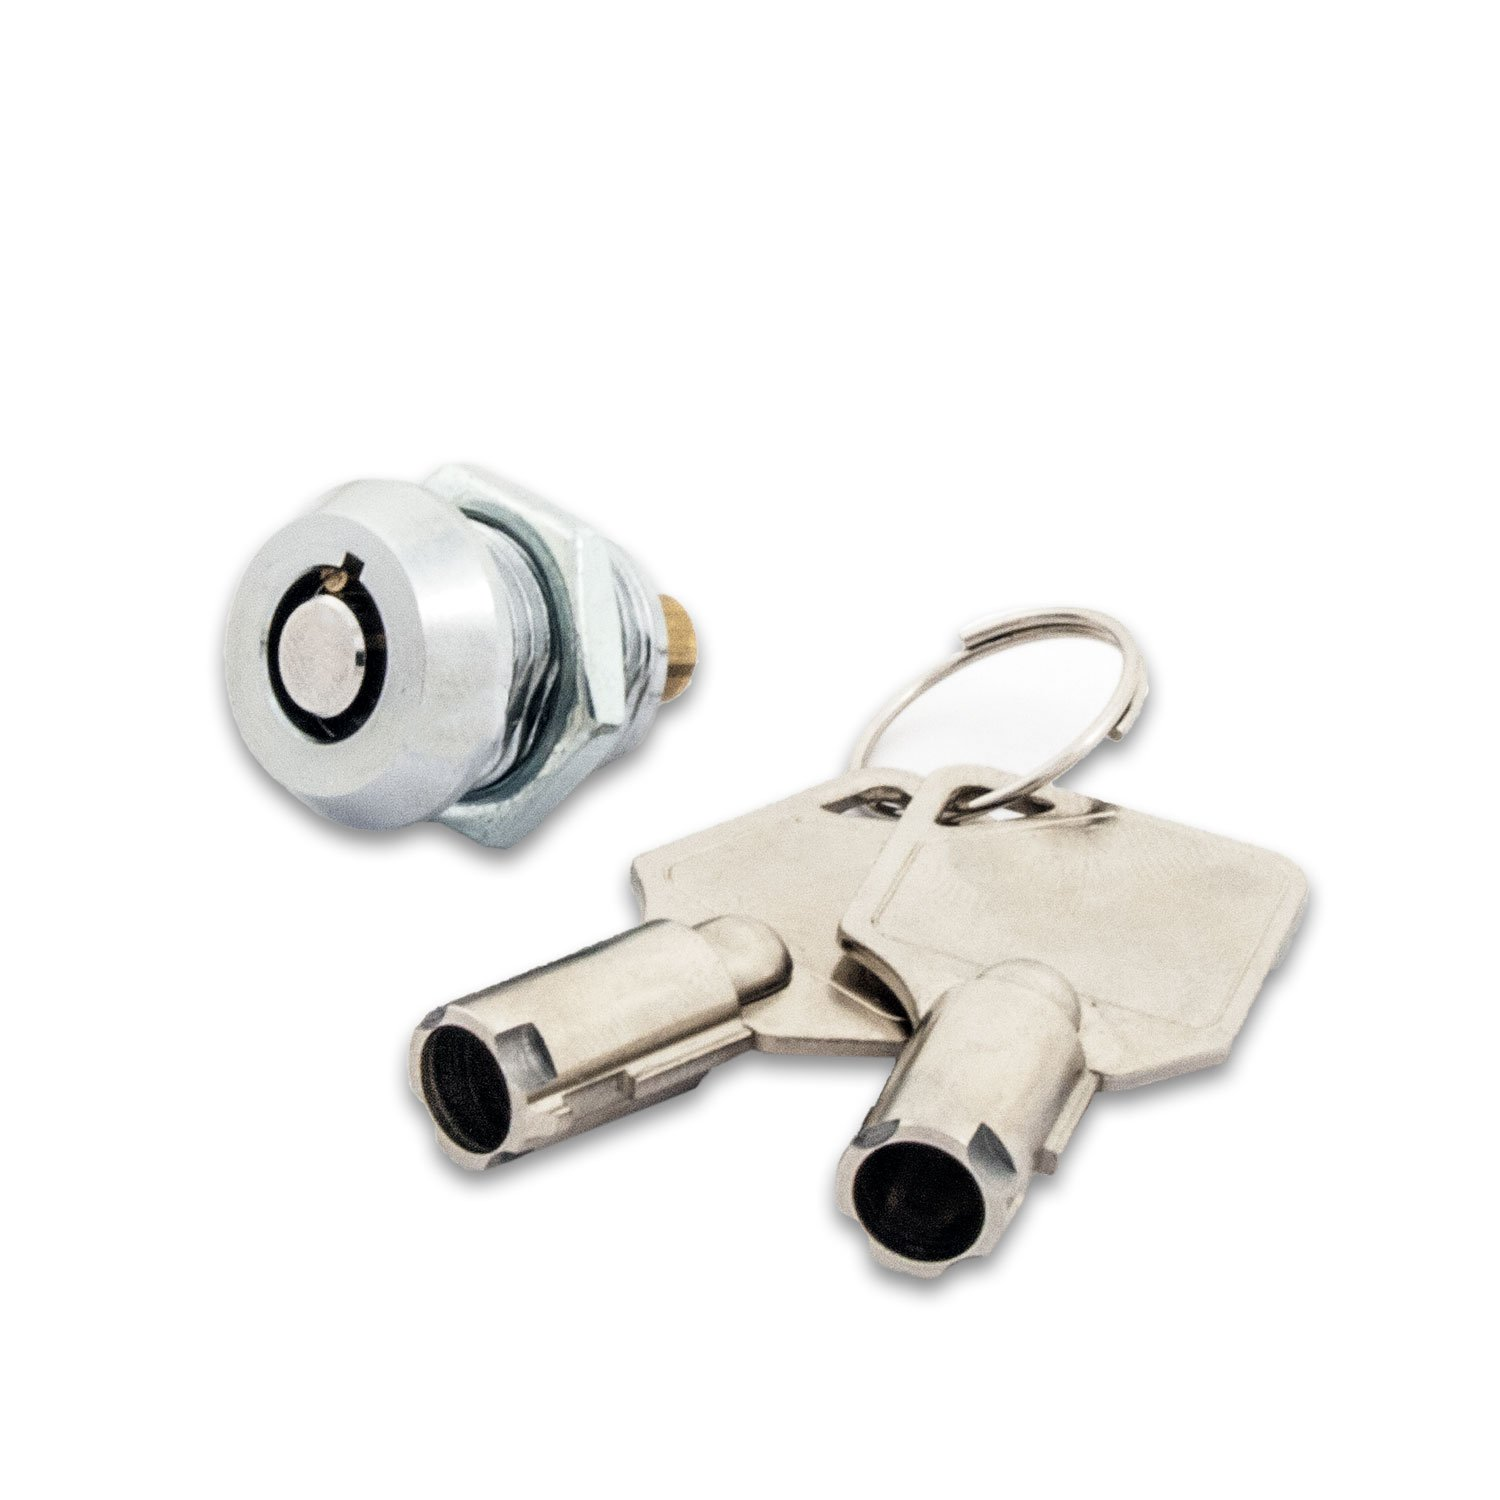 FJM Security 2615B-KD Miniature Tubular Push Locks with Chrome Finish, Keyed Different by FJM Security